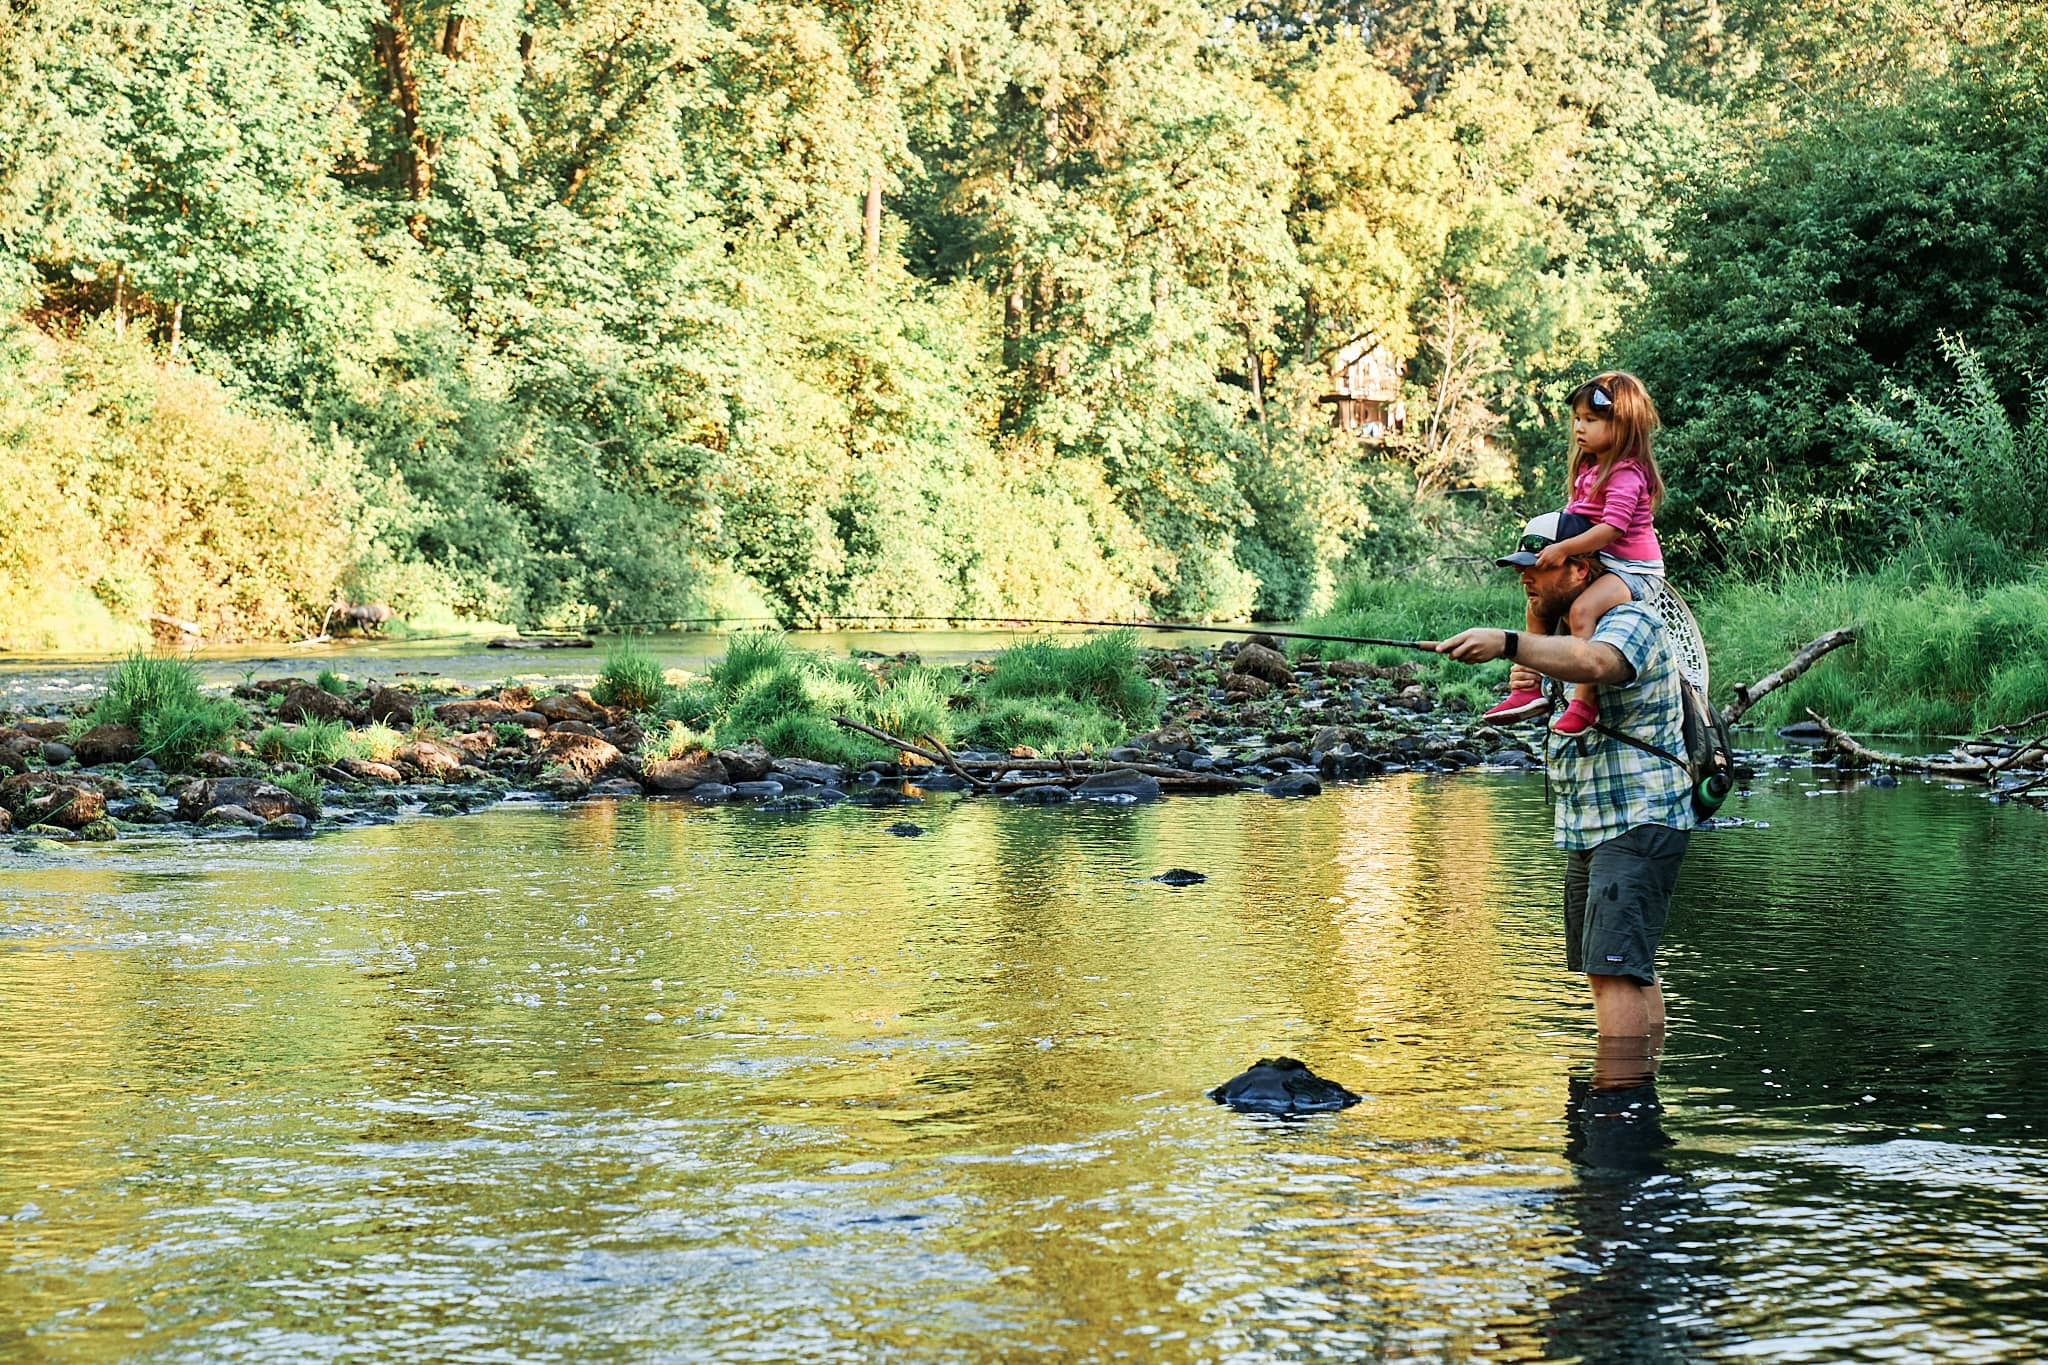 McKenzie fishing with her Dad on the river